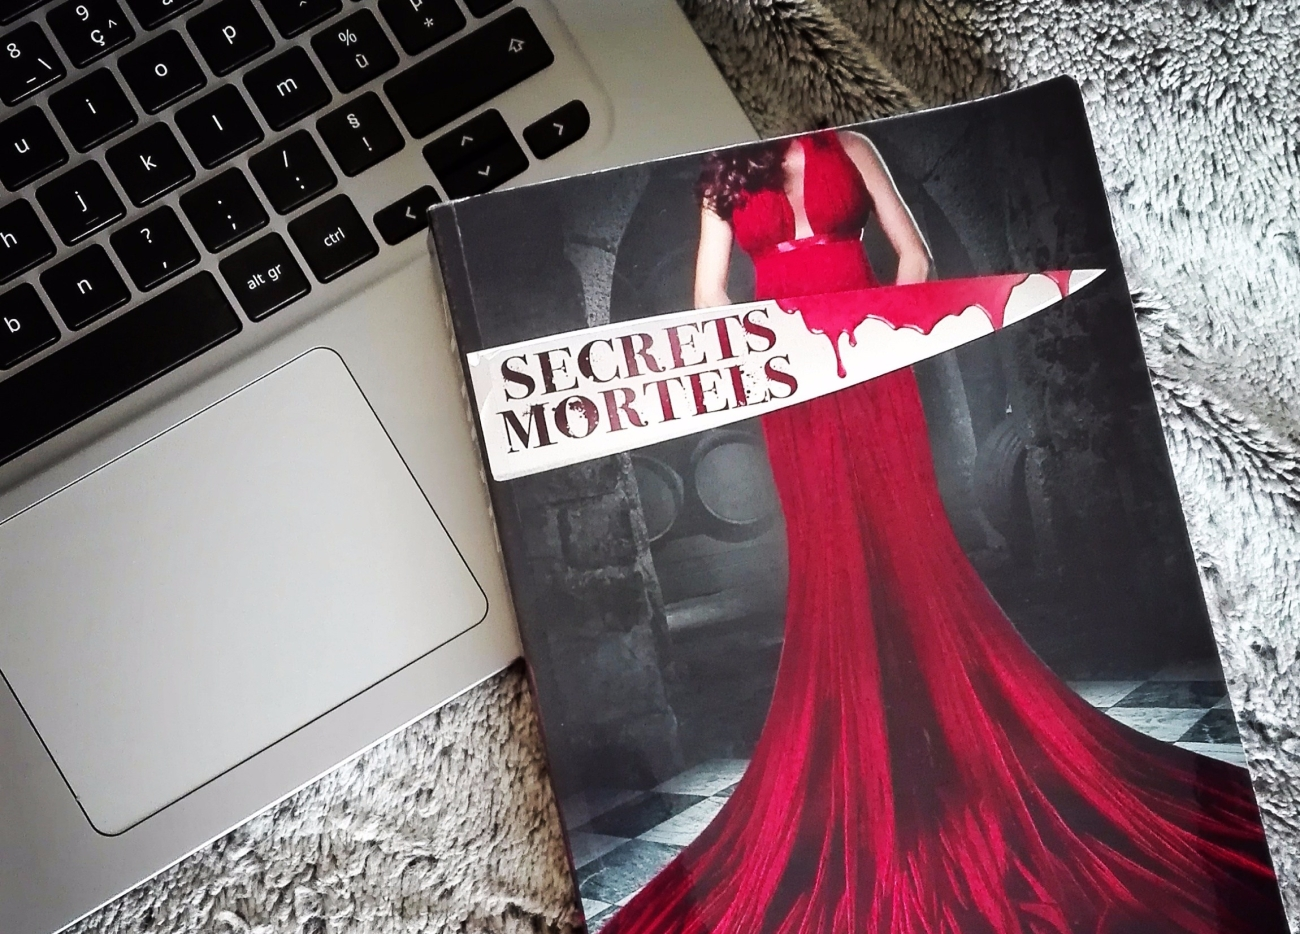 Secrets-Mortels-Sam-Carda